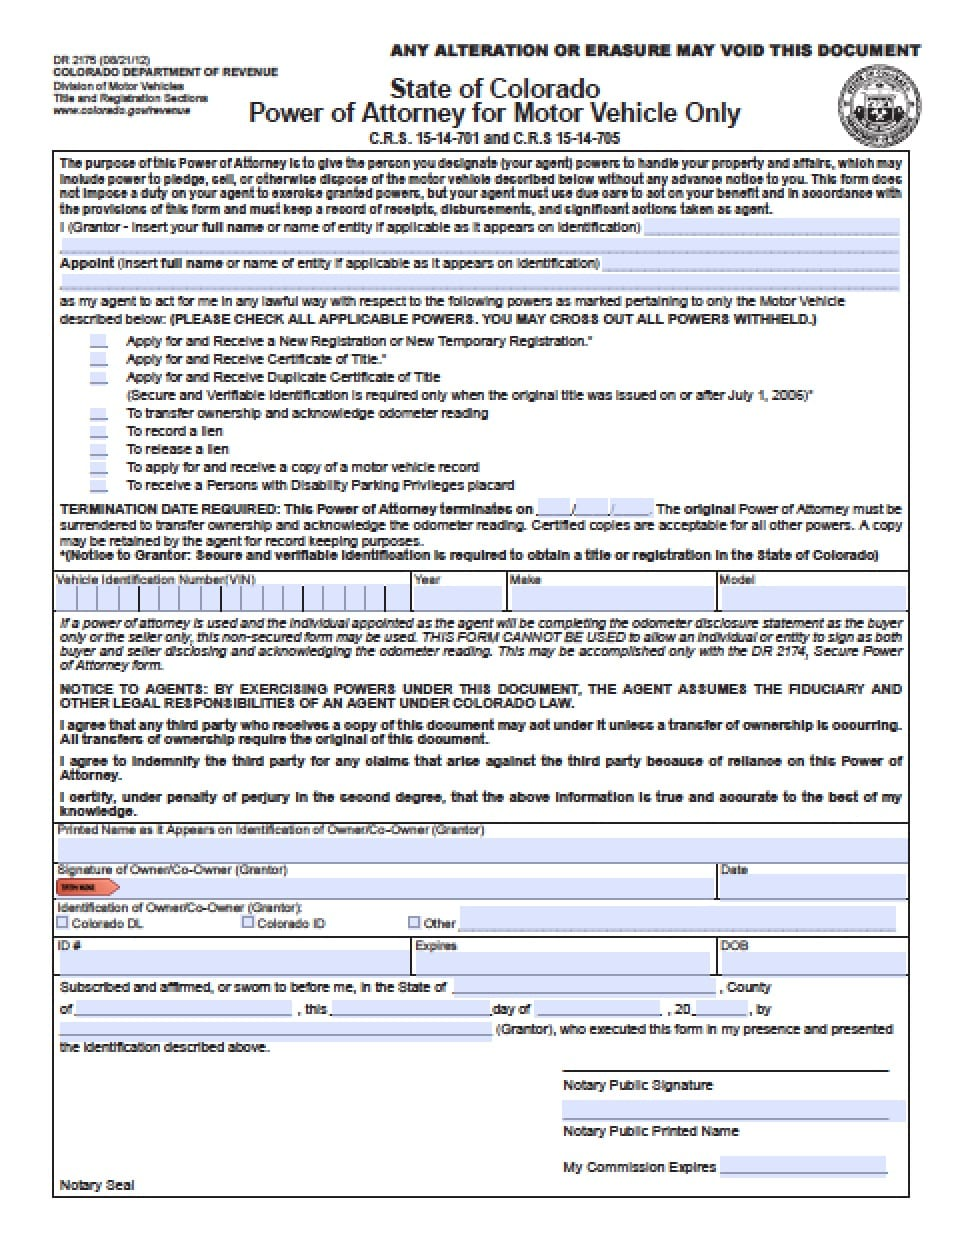 Colorado Vehicle Power of Attorney Form - Power of Attorney : Power ...